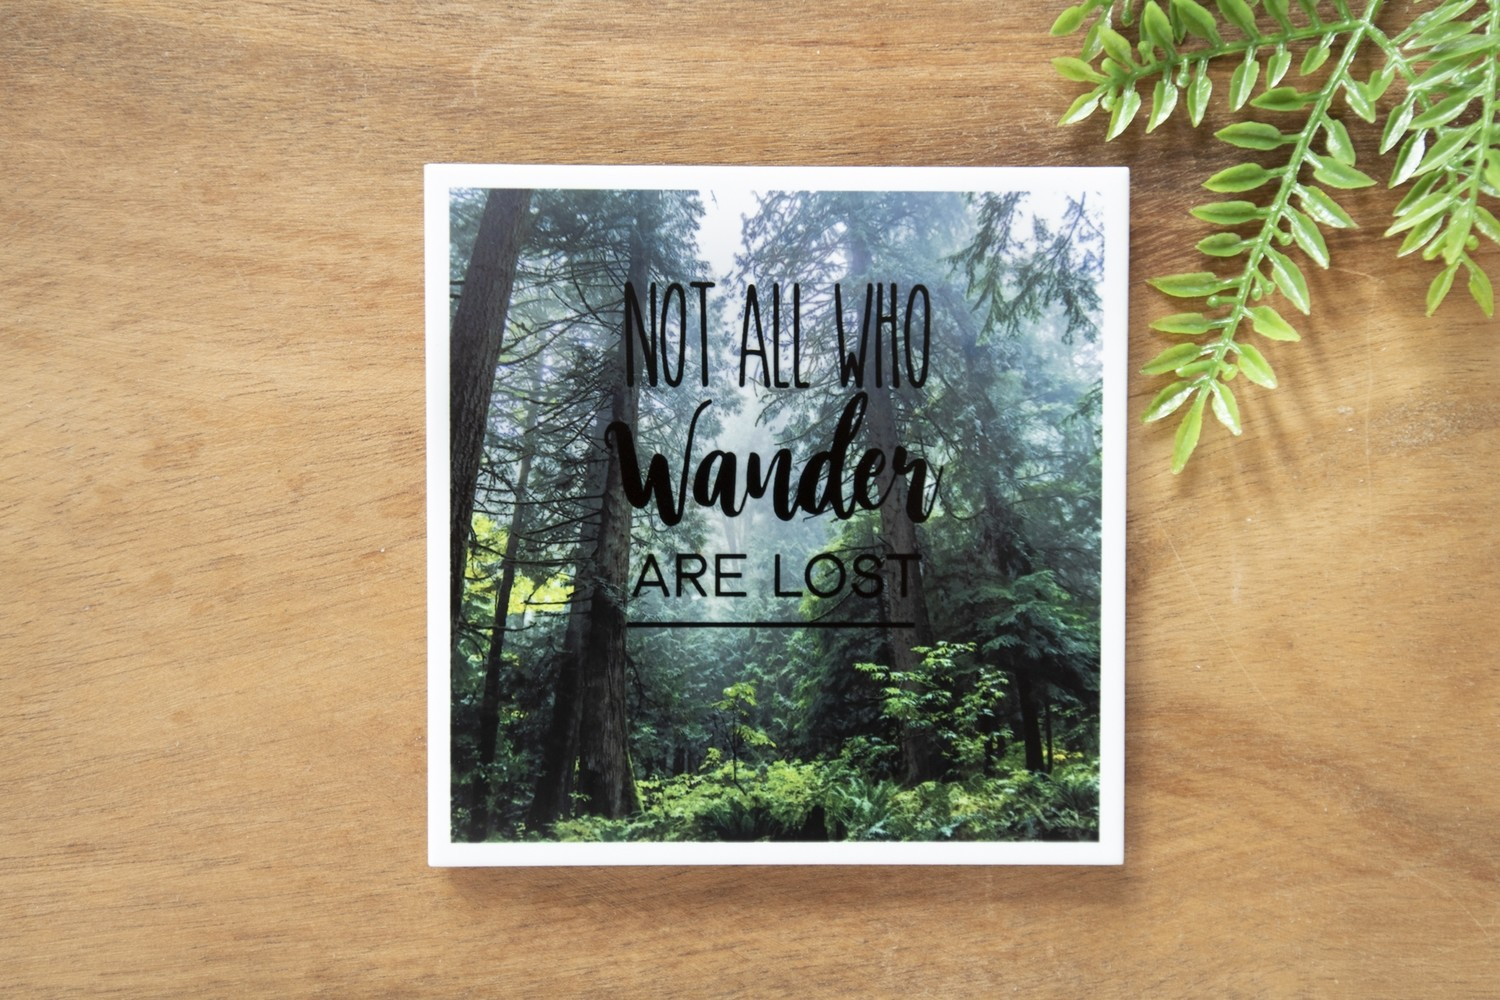 Not All Who Wander Are Lost-Nature Photo Coaster